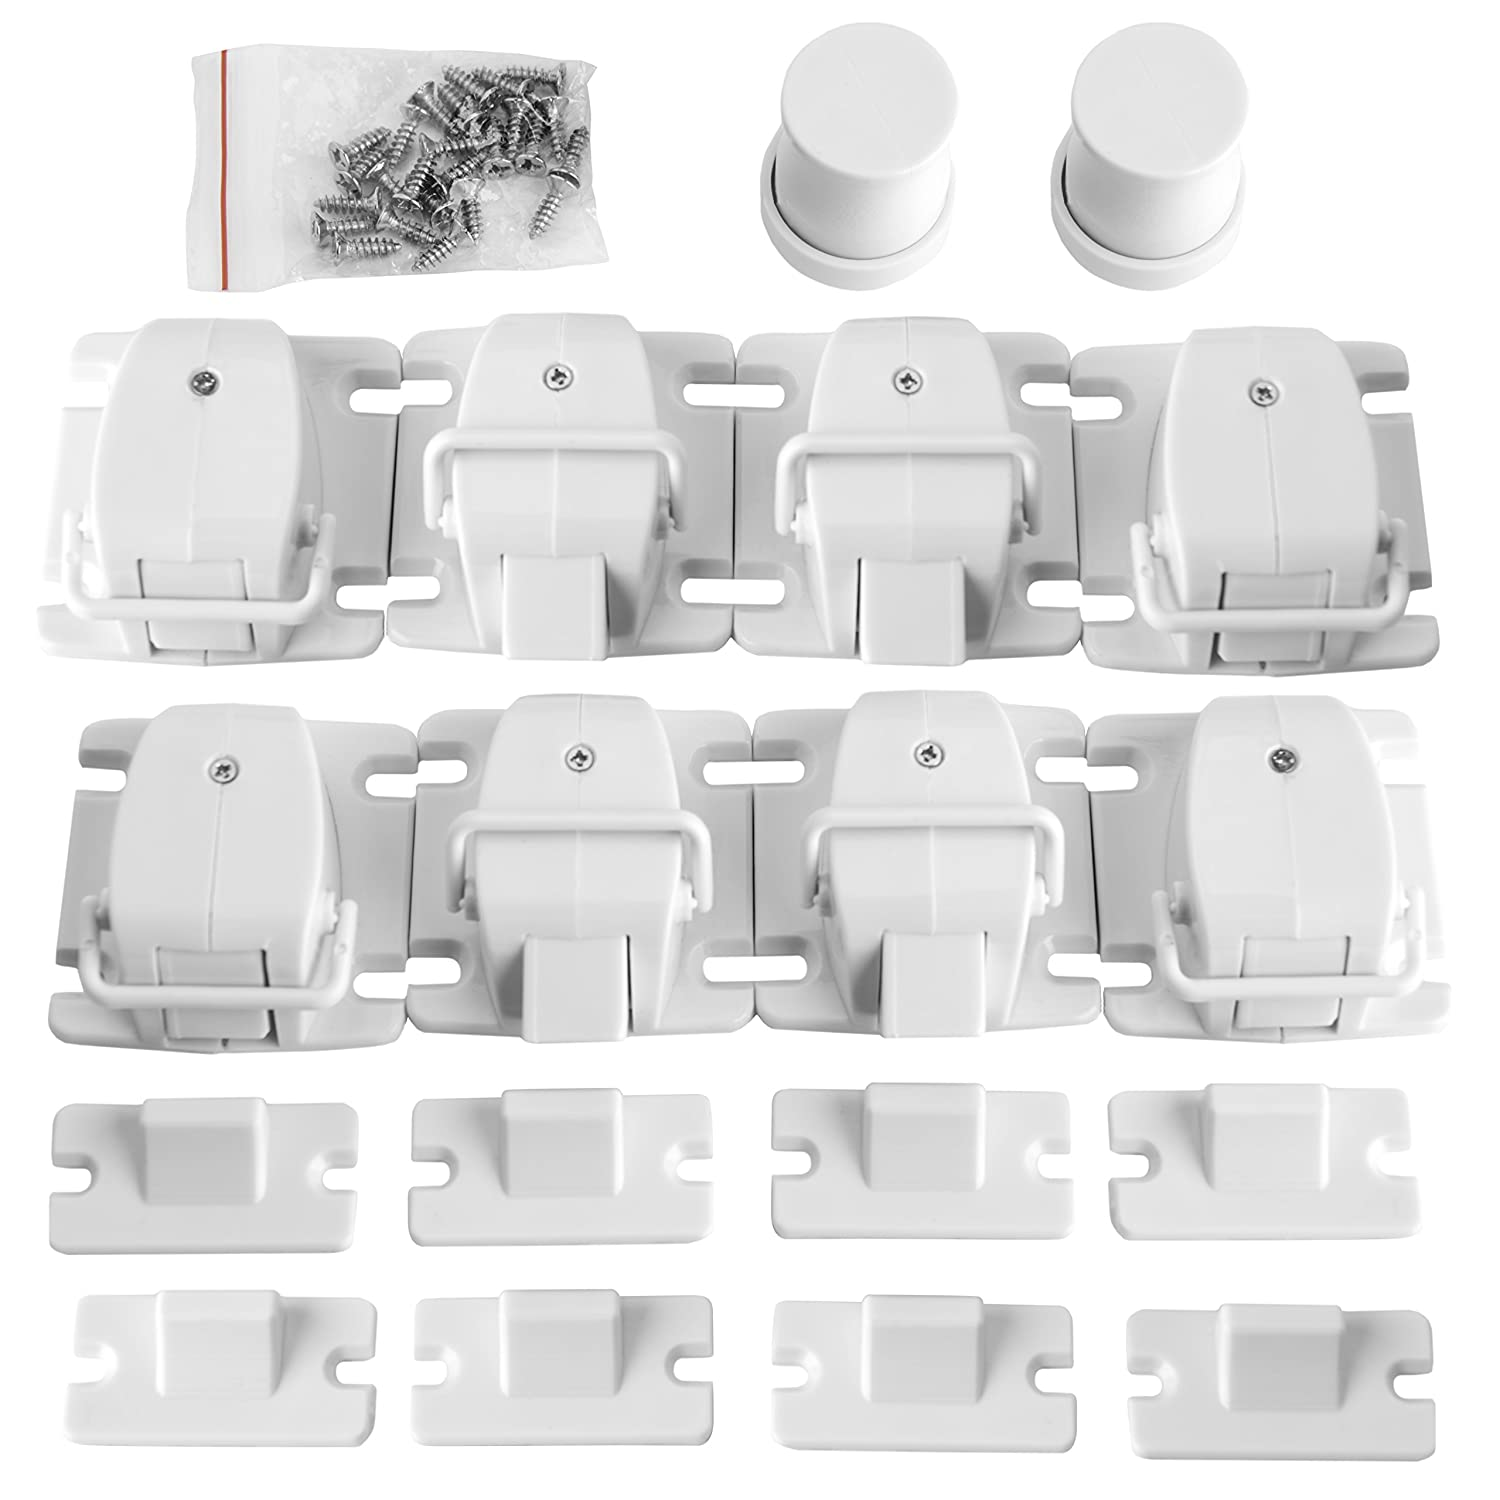 Ultimate Childproof Magnetic Cabinet Locks By BabySafetySupply – Easy No Tool Installation, Invisible Drawer Locks, Super-Strong Adhesive, Essential Toddler & Infant Protection, 8 Locks + 2 Keys Set